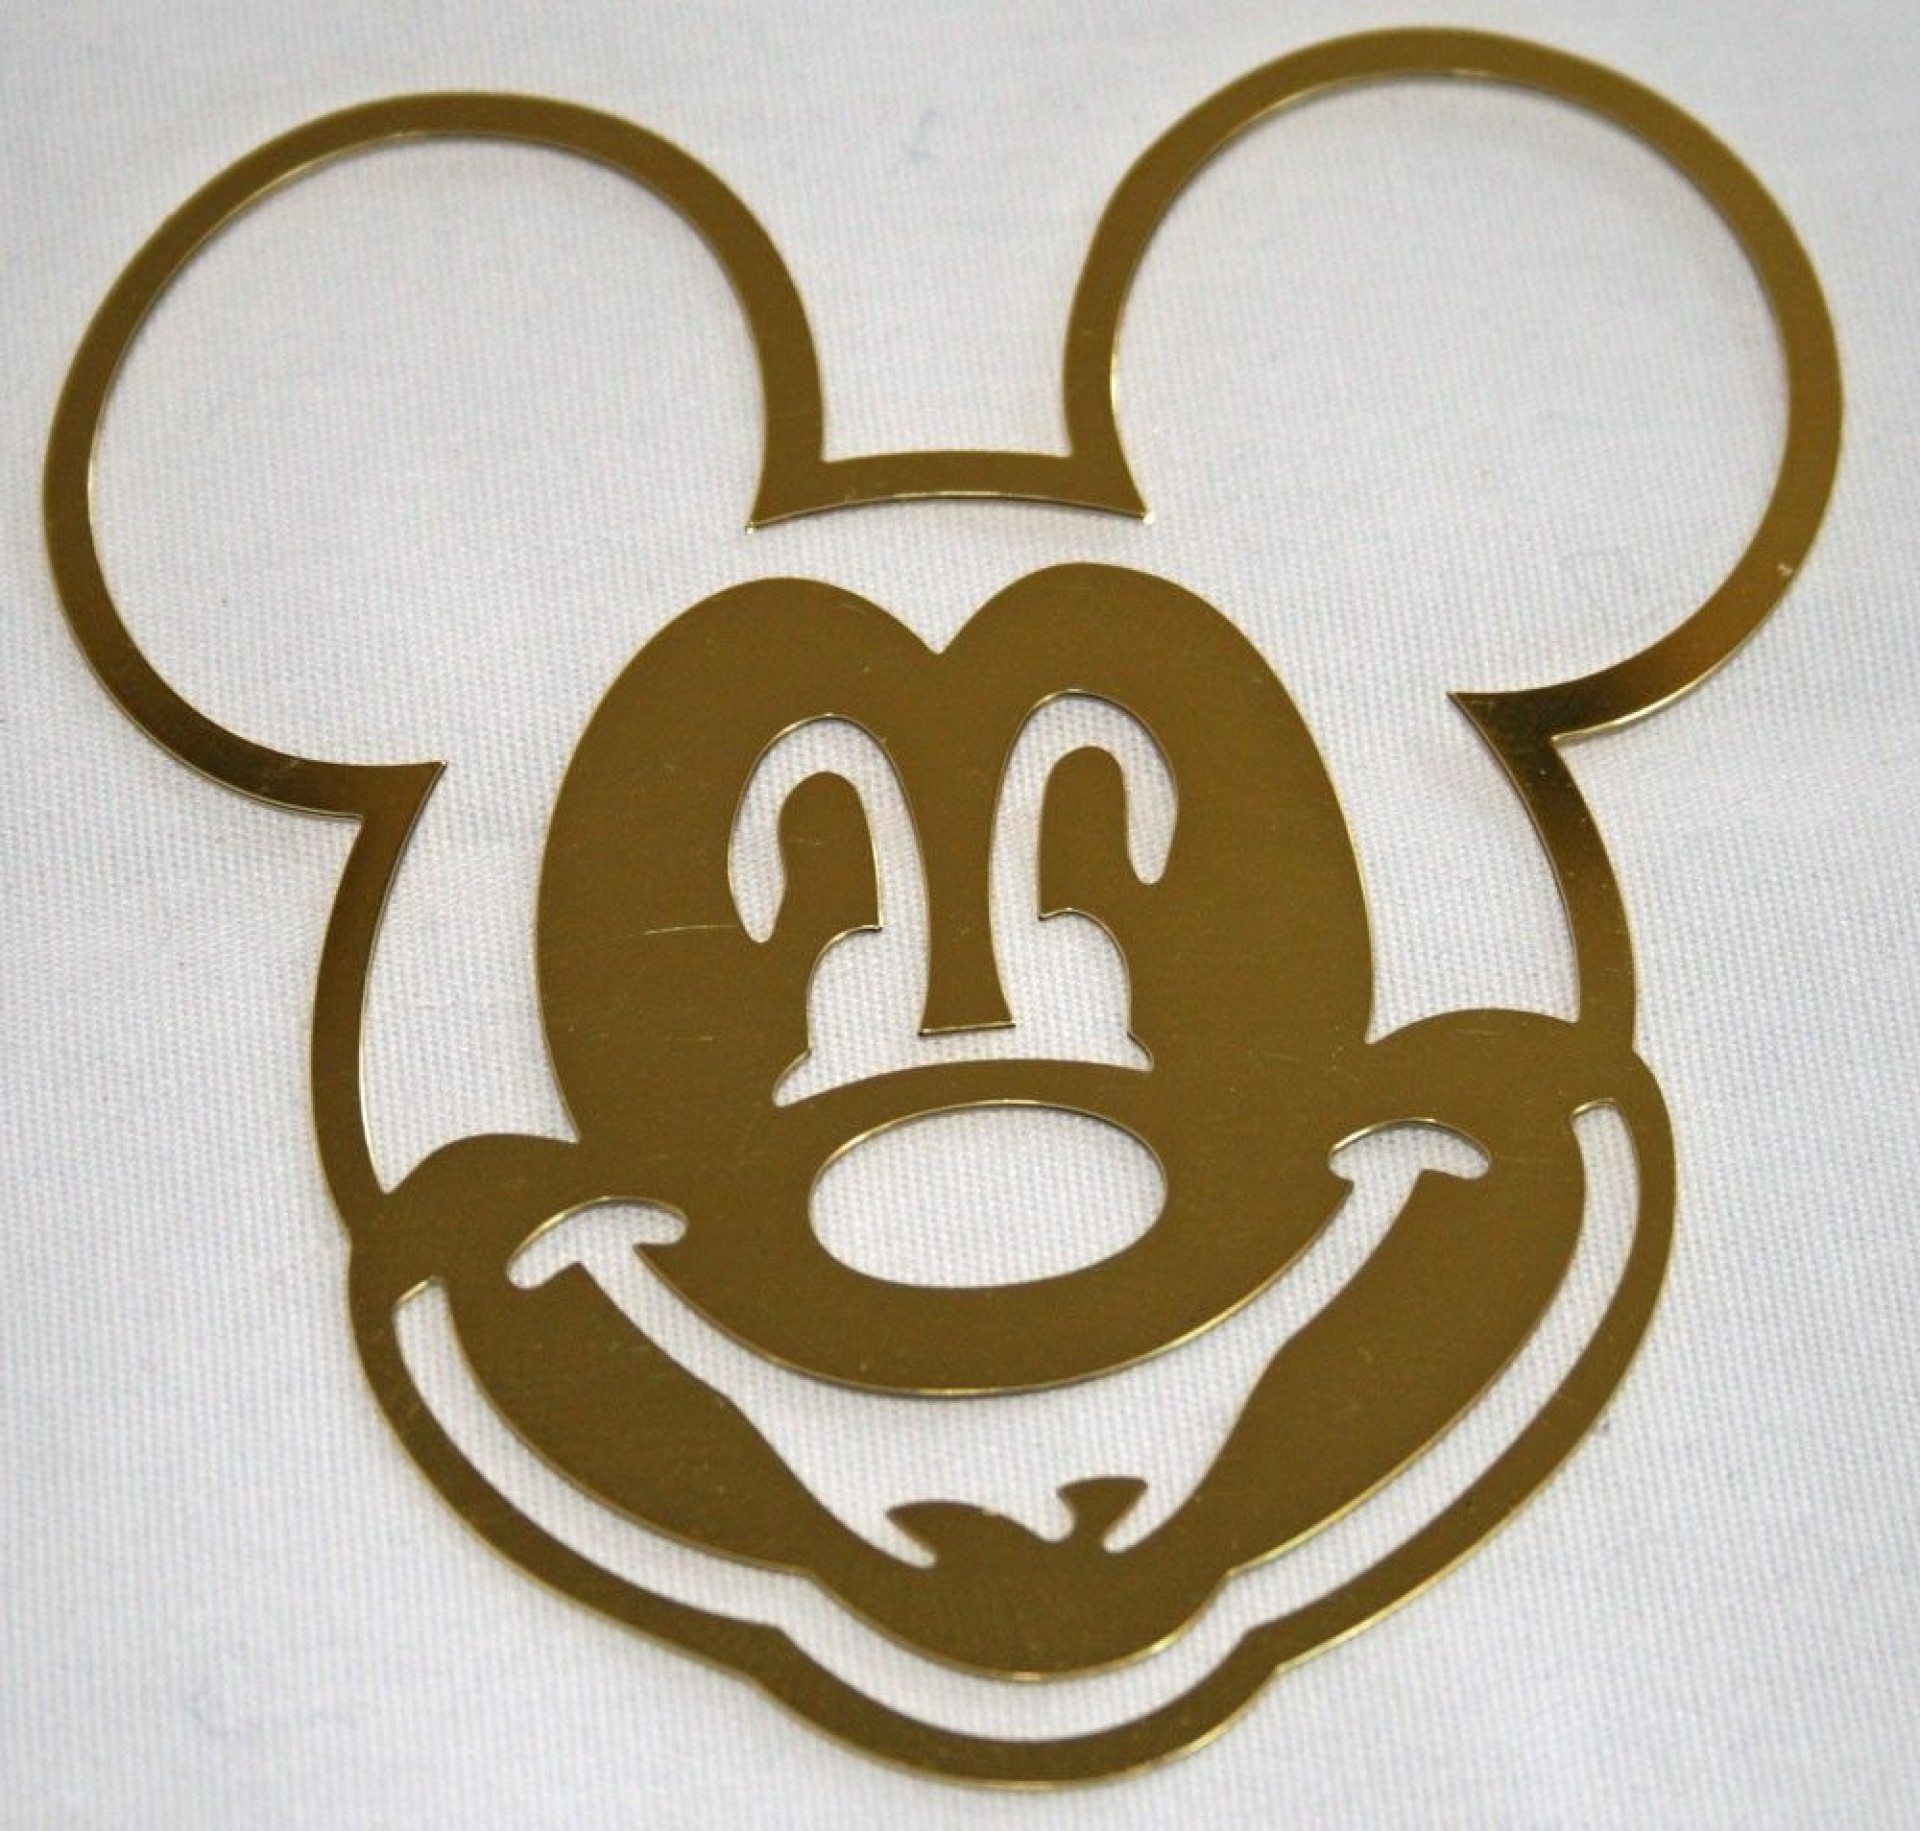 006 Impressive Mickey Mouse Face Template For Cake Highest Quality  Printable1920